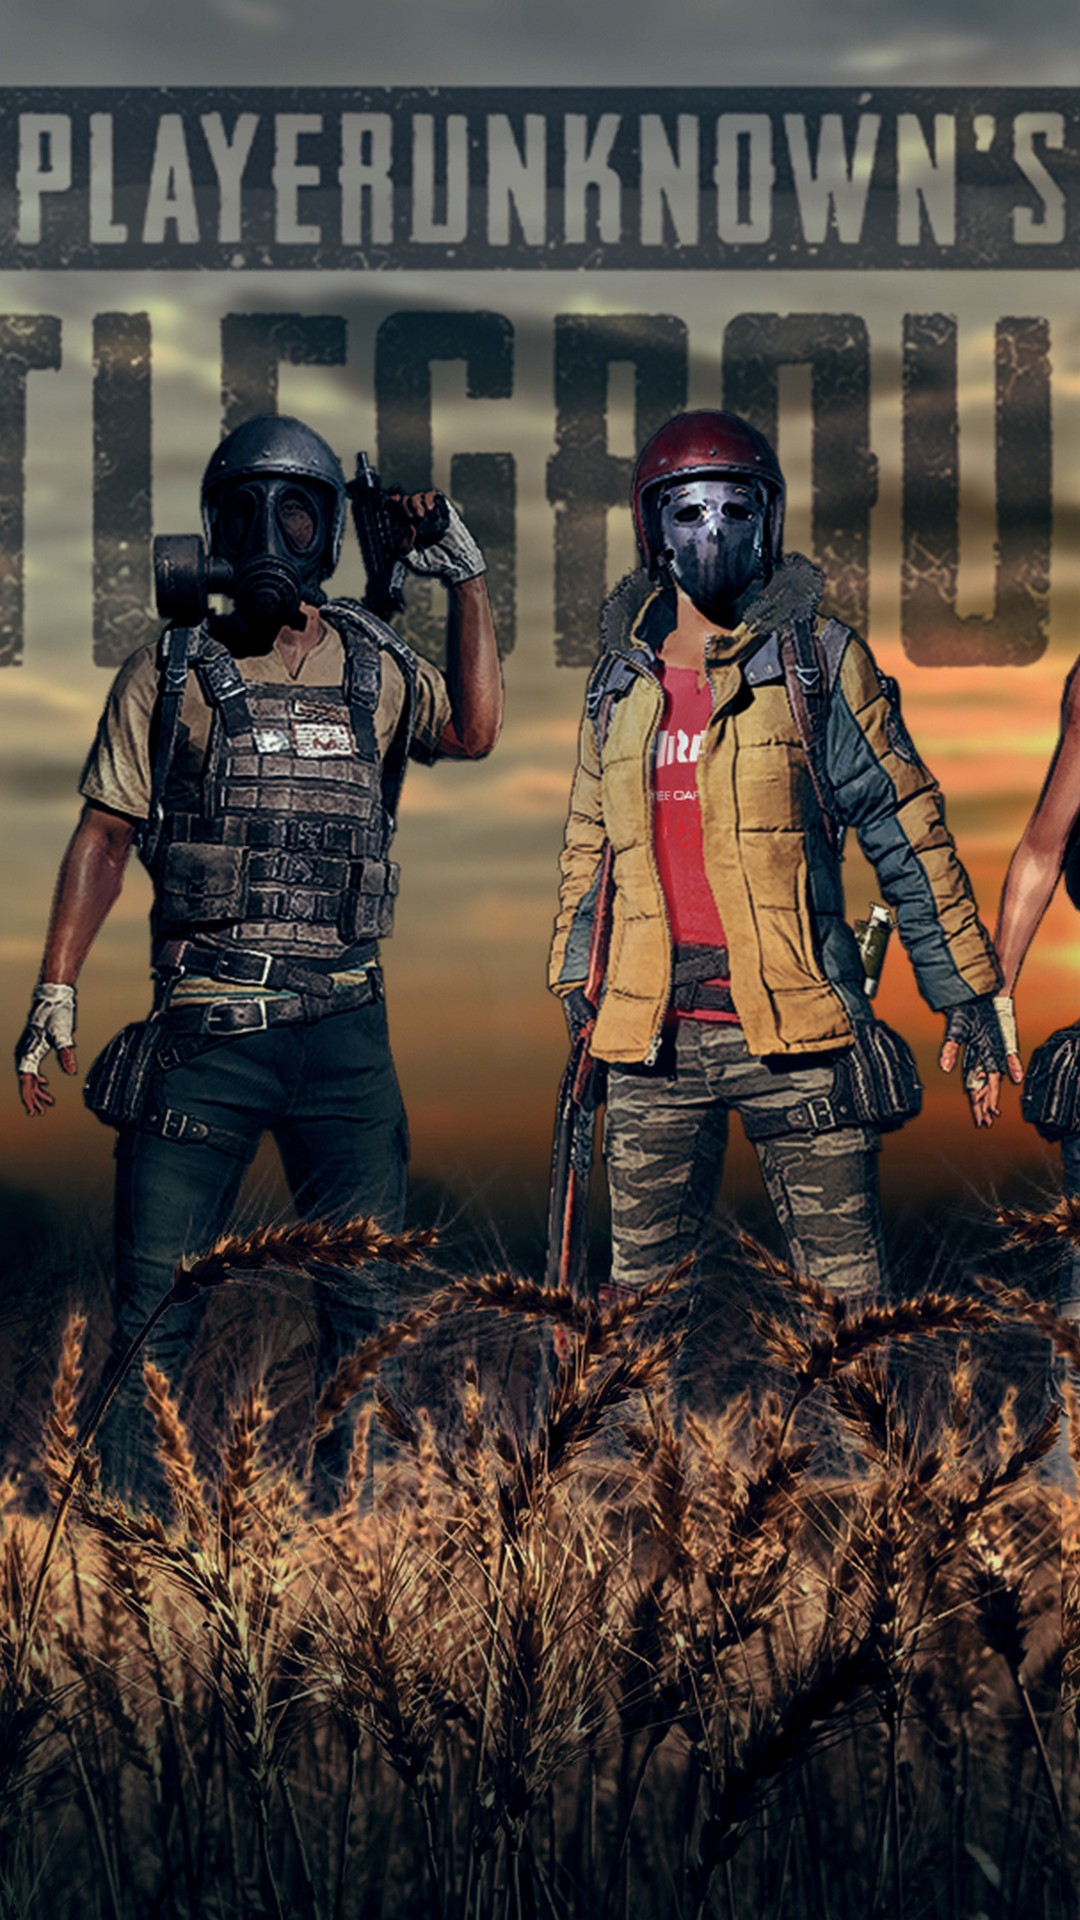 Wallpaper iPhone PUBG Xbox One Update 2020 3D iPhone Wallpaper 1080x1920